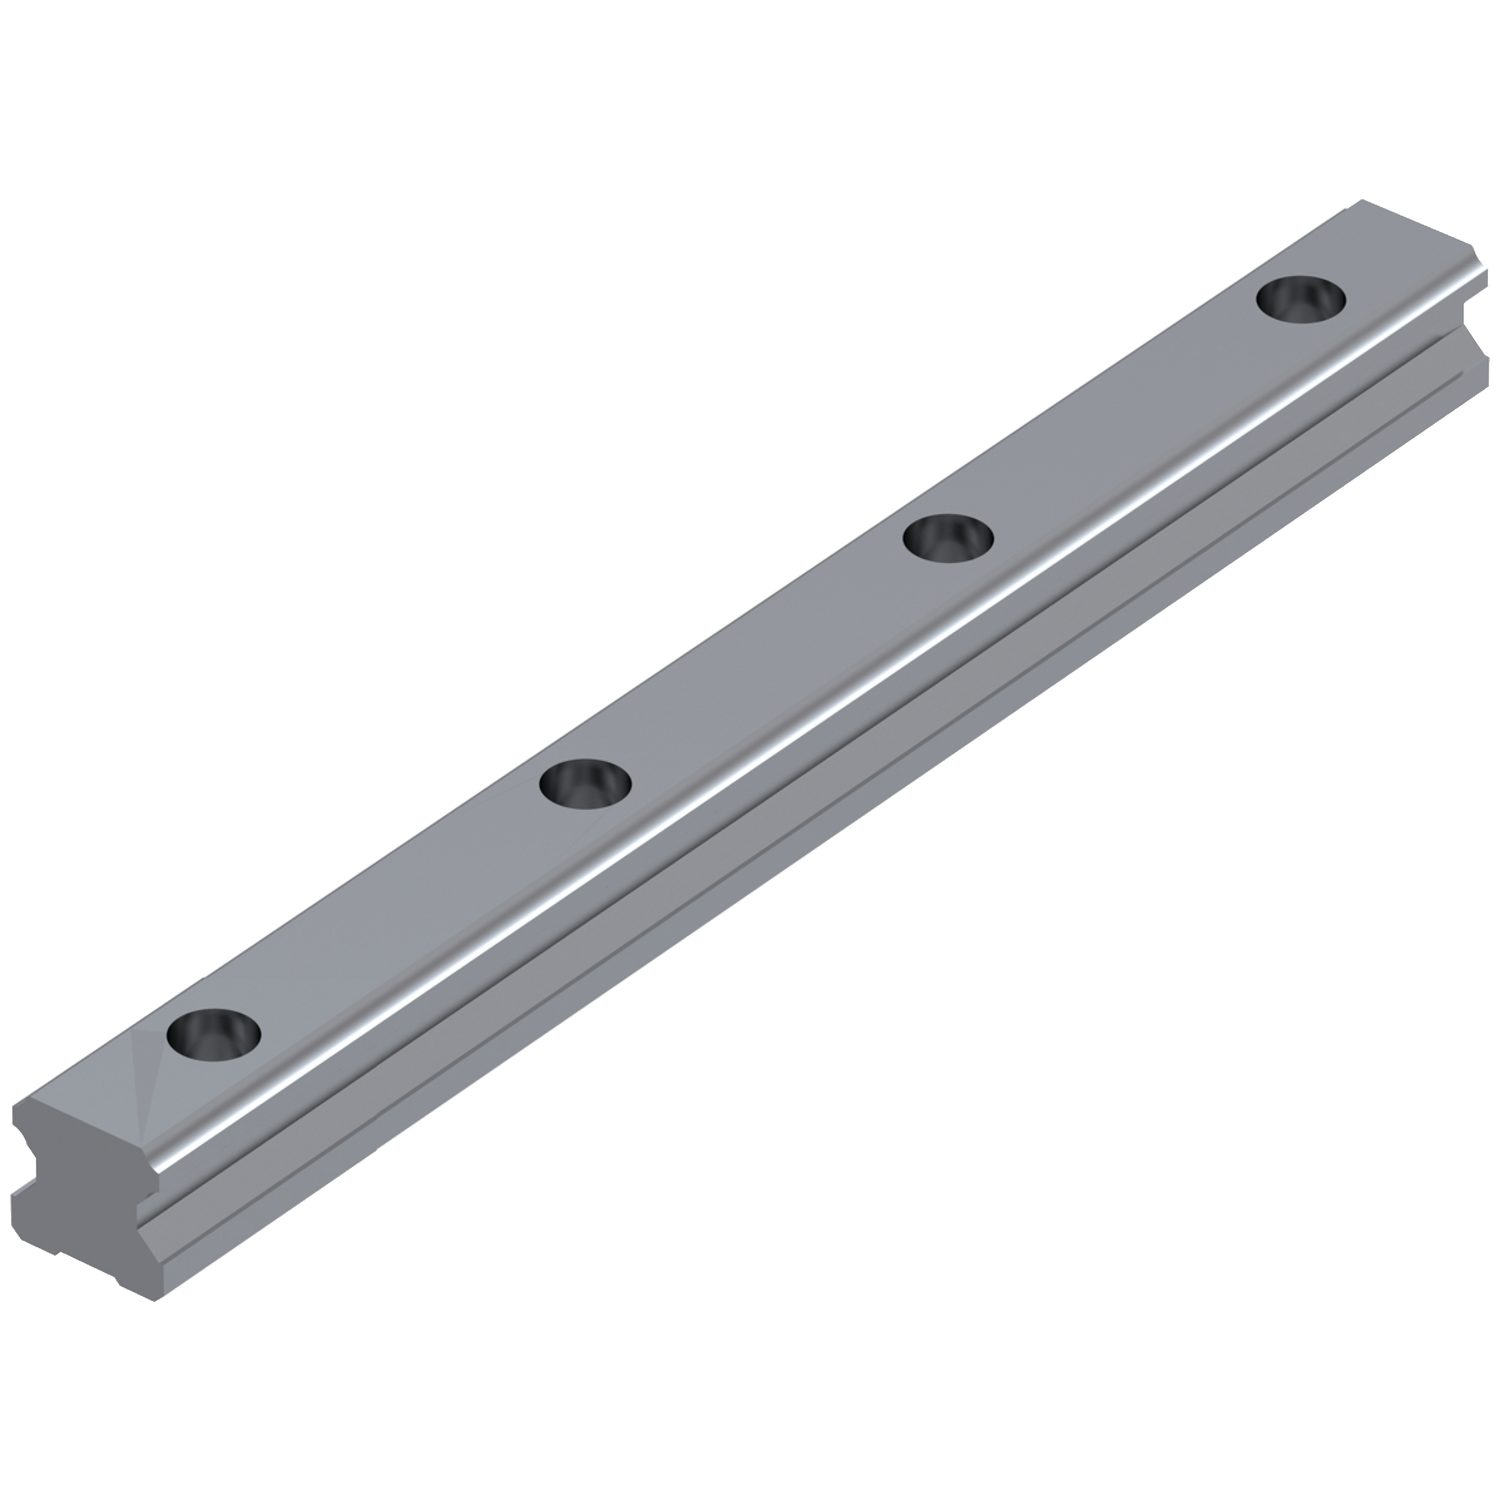 L1016.20 - 20mm Linear Guide Rail